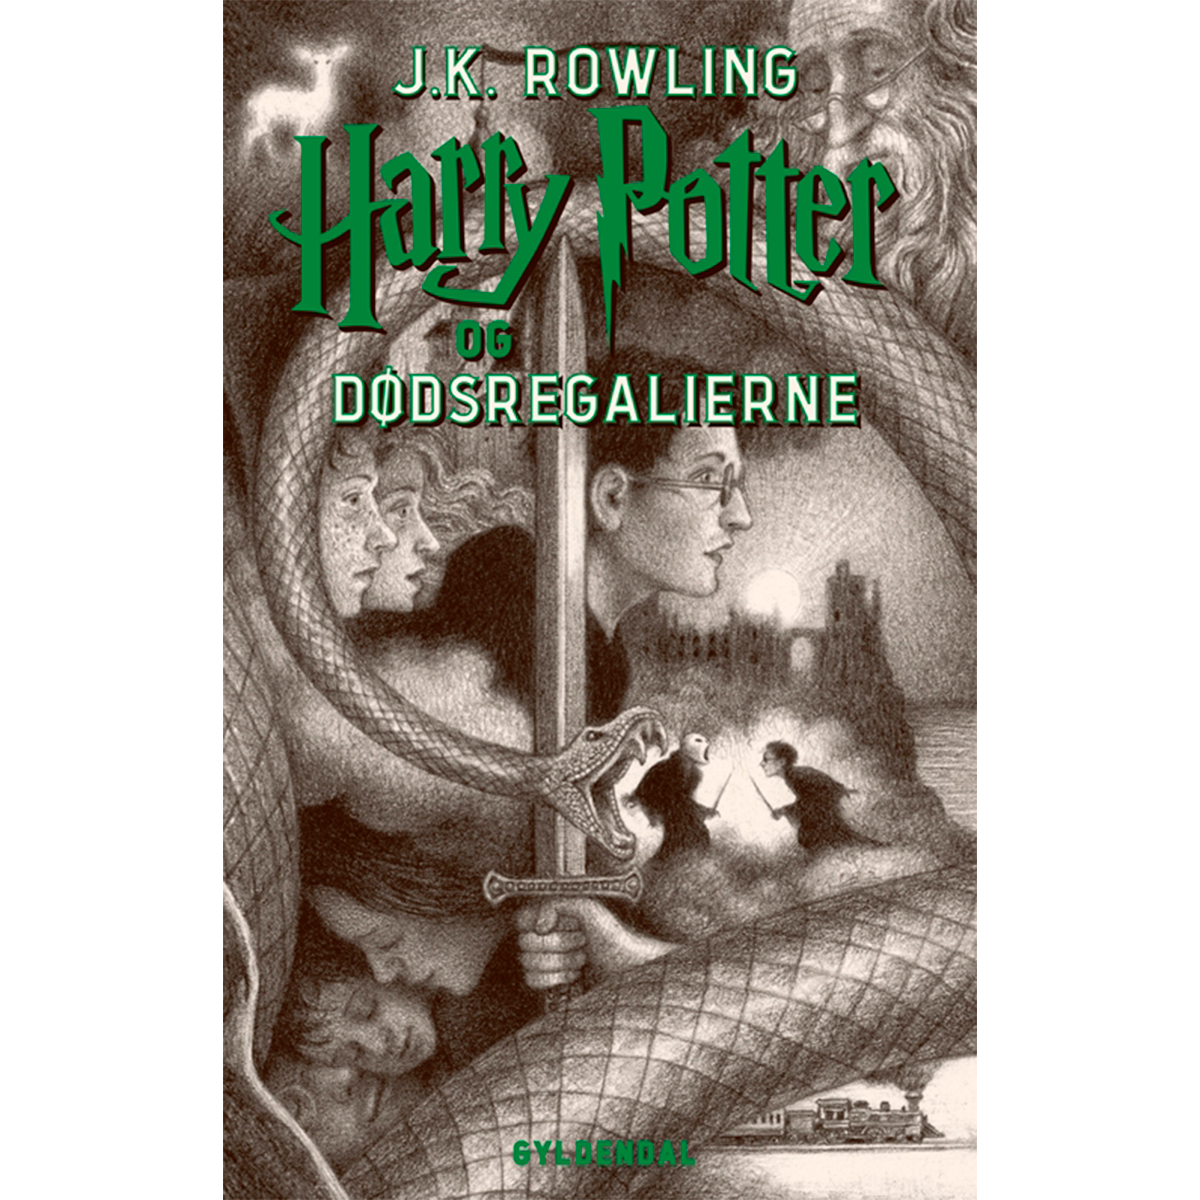 Harry Potter og dødsregalierne - Harry Potter 7 - Hæftet